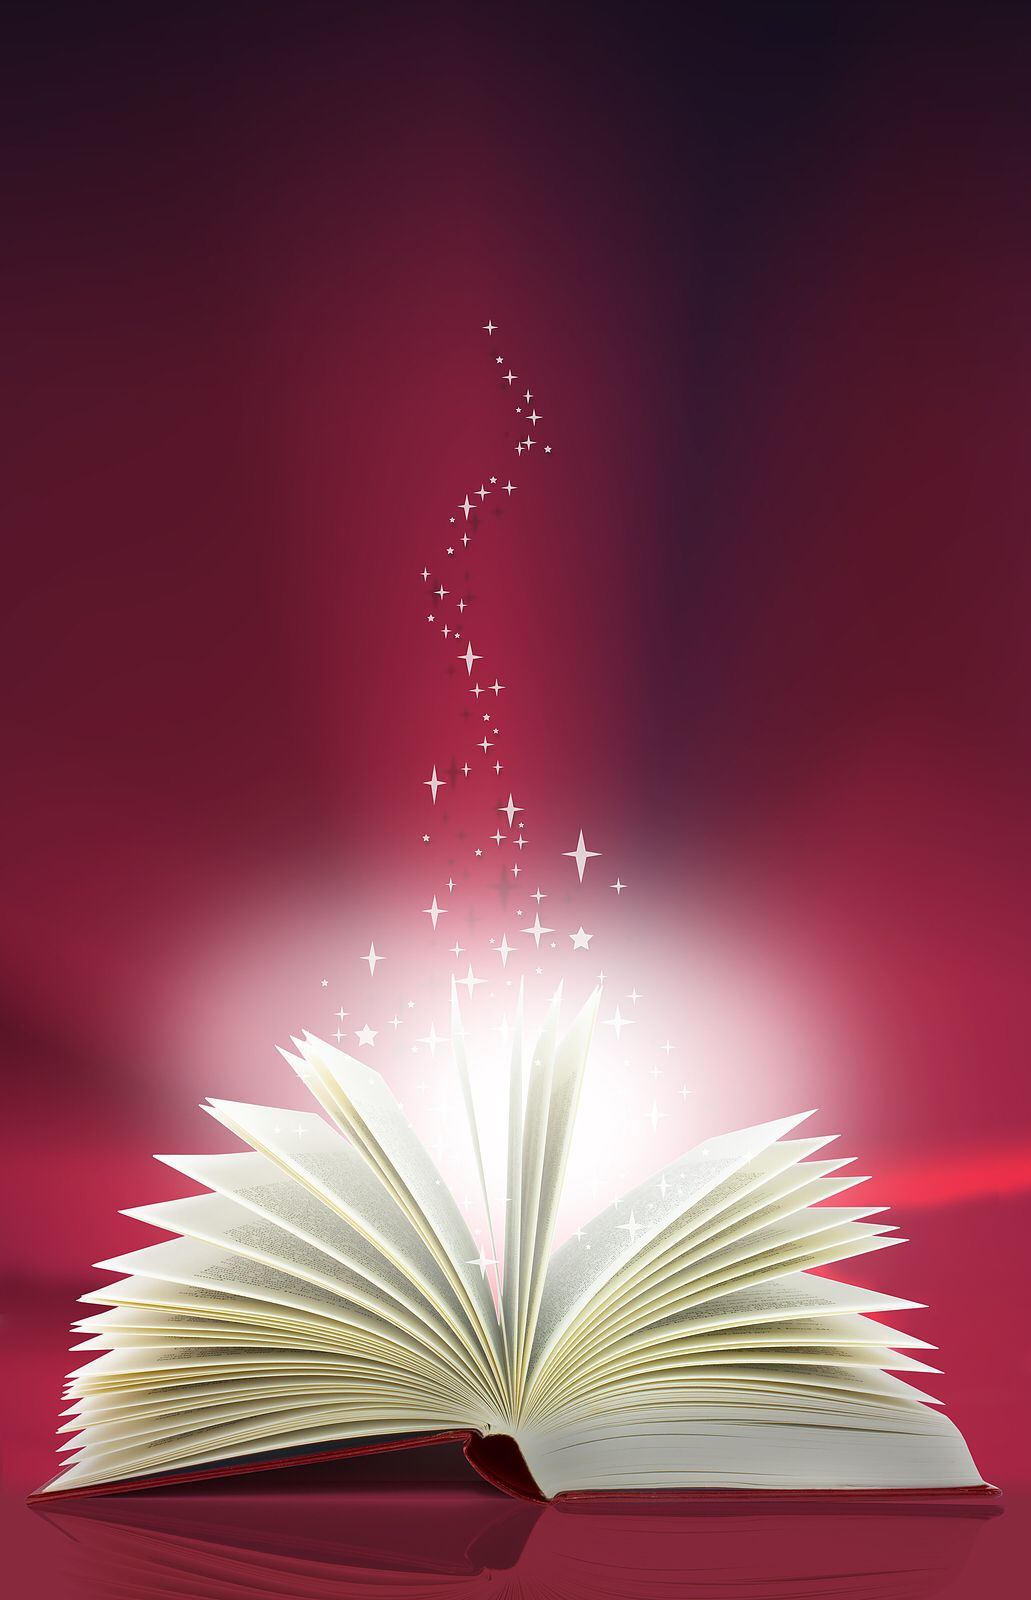 The Magic Of Books Pretty Wallpapers Book Wallpaper Cute Wallpaper Backgrounds